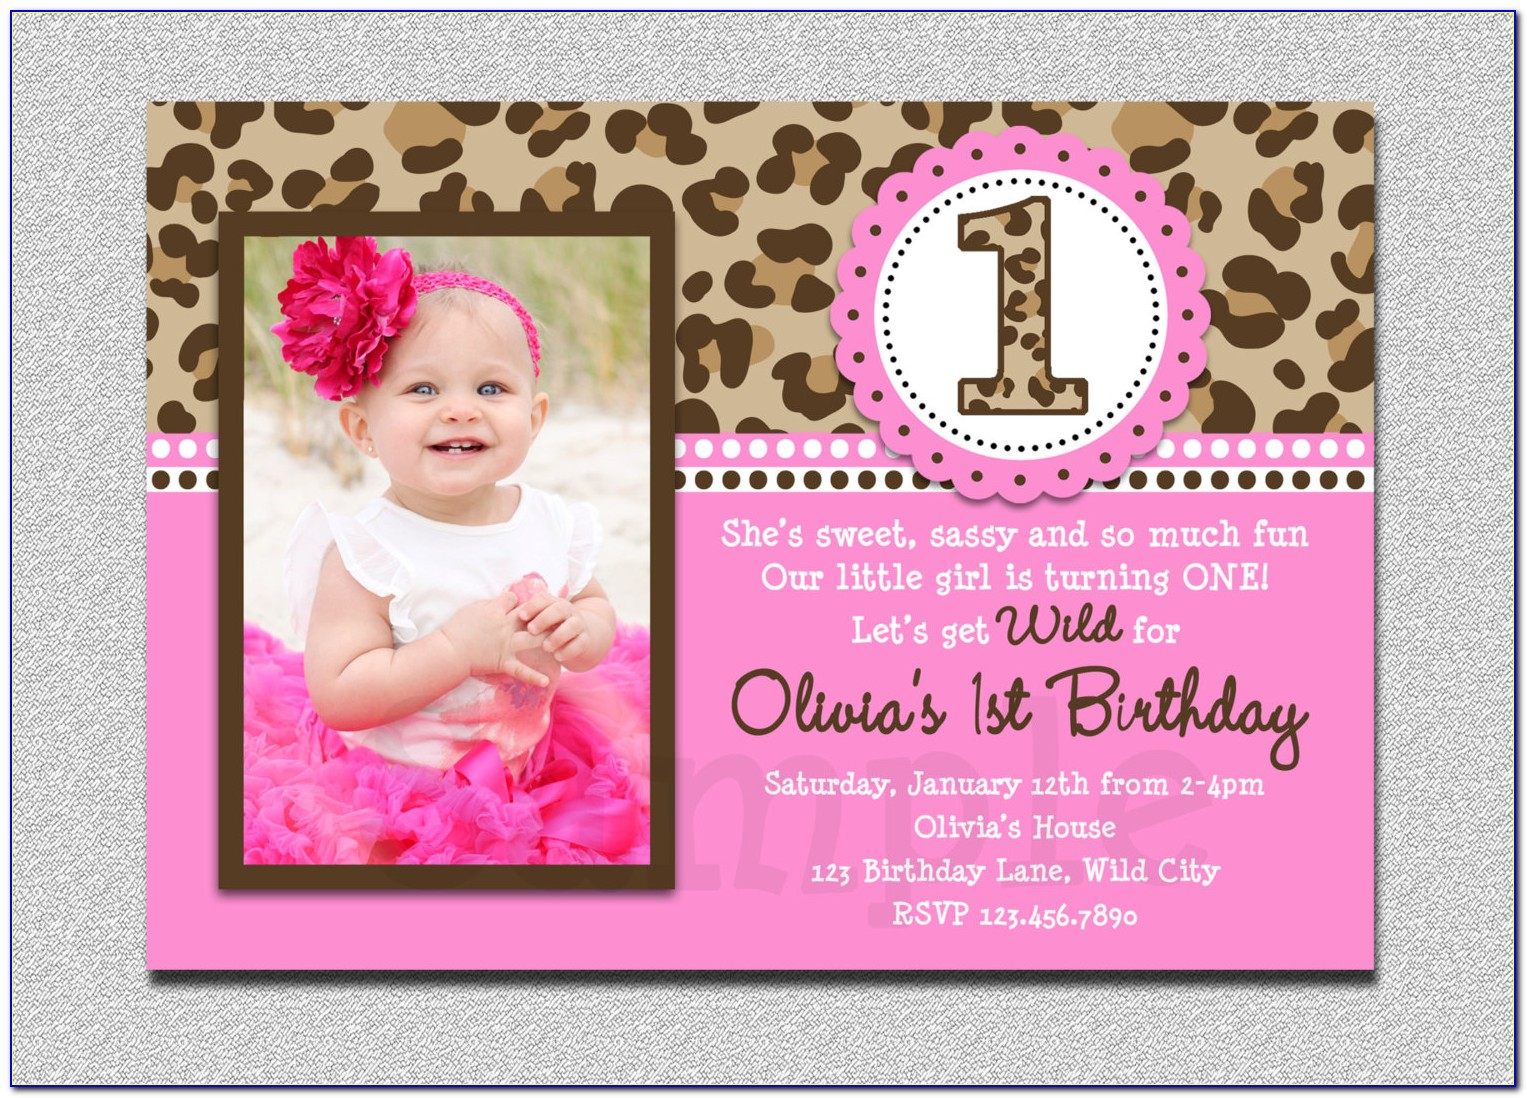 Free Downloadable Birthday Invitations